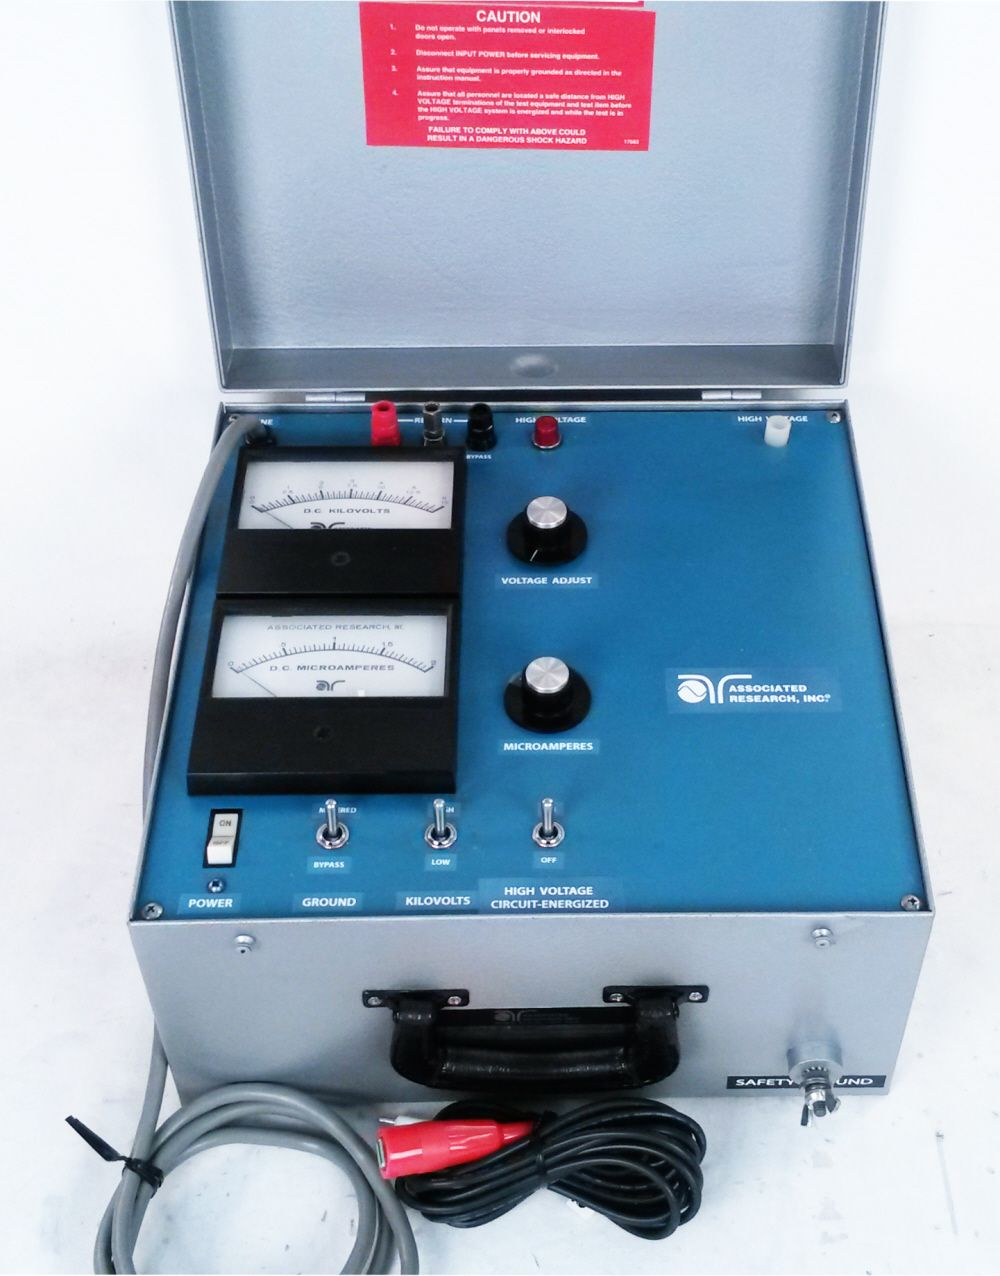 Associated Research 5220a For Sale 1350 00 In Stock Accusource Electronics Refurbished Electronics Electronics Research